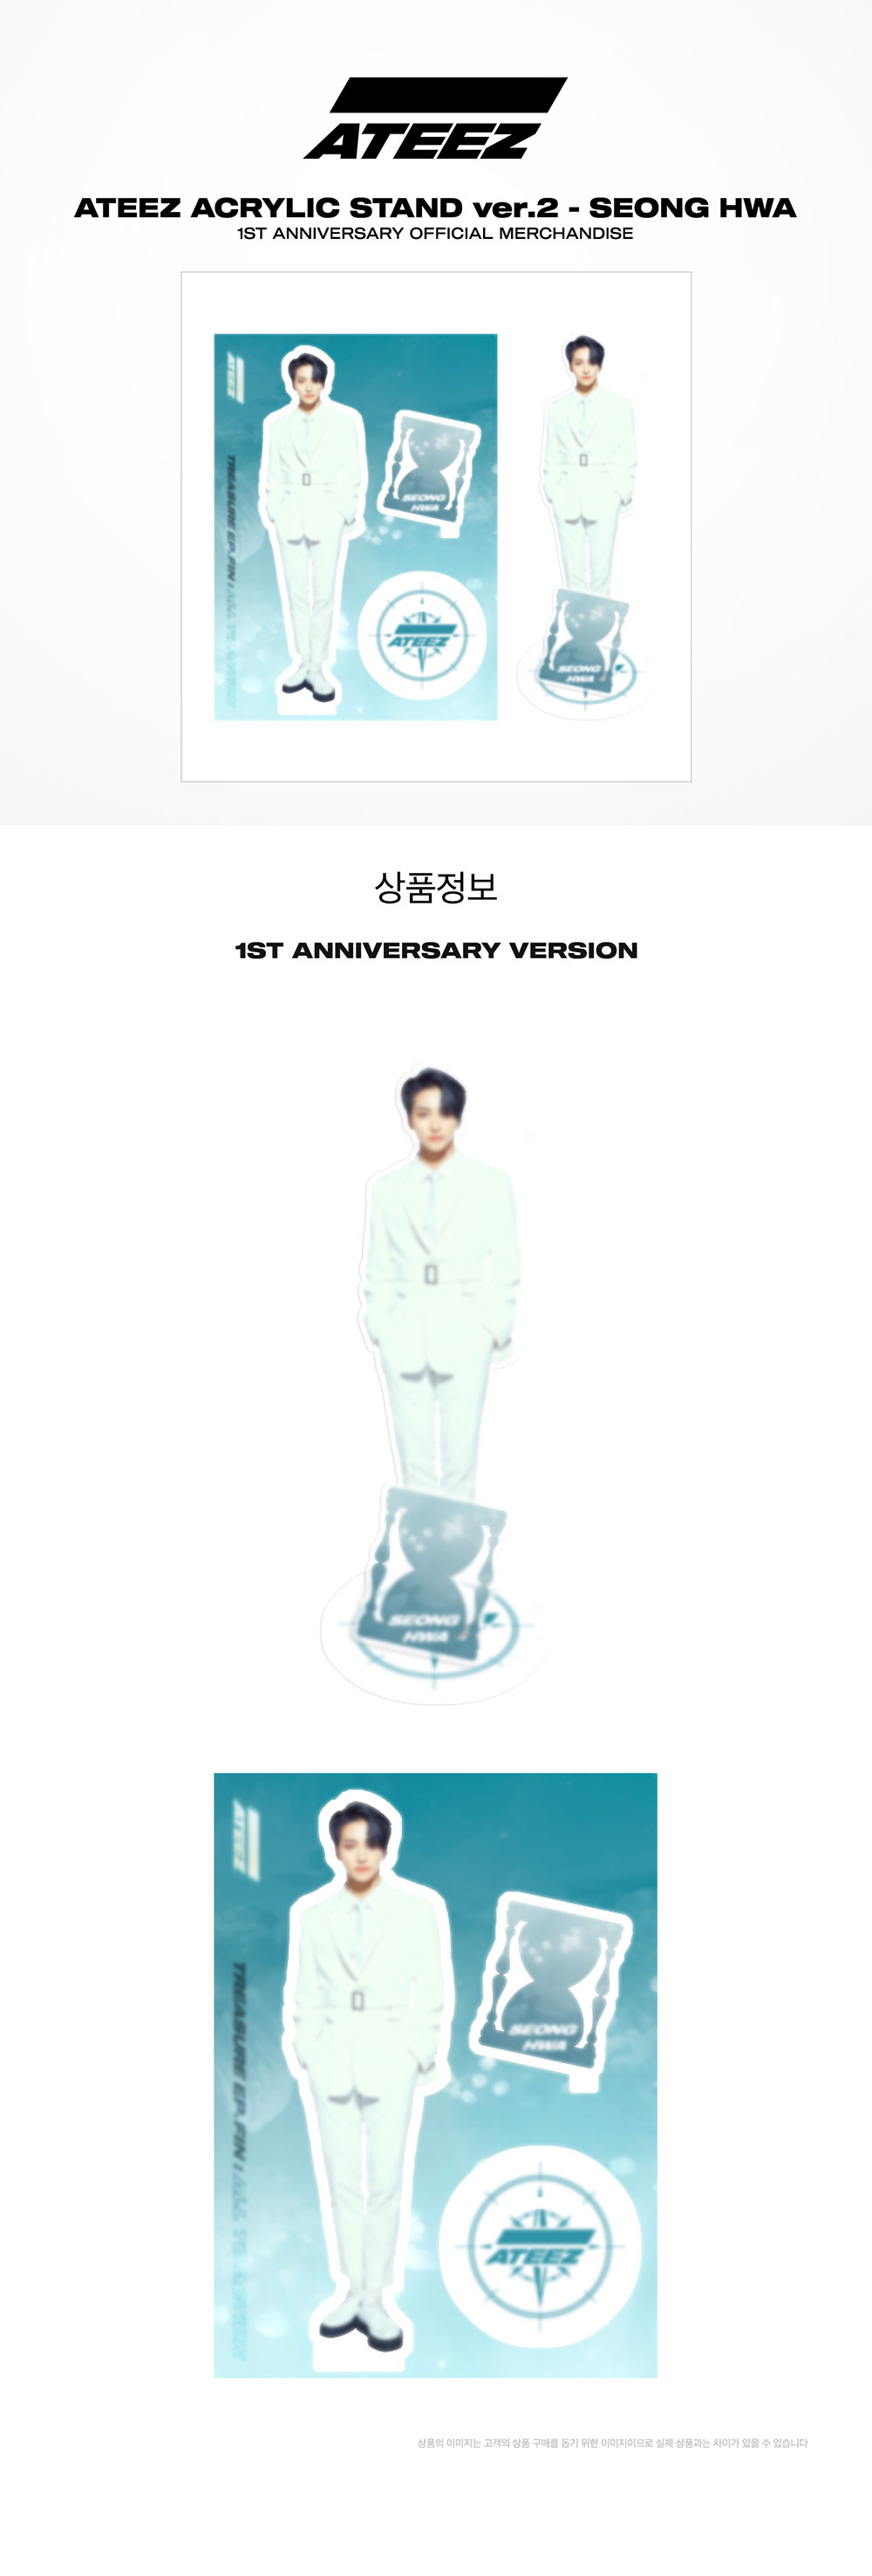 ateez_1st_anniversary_ACRYLIC_STAND2-6